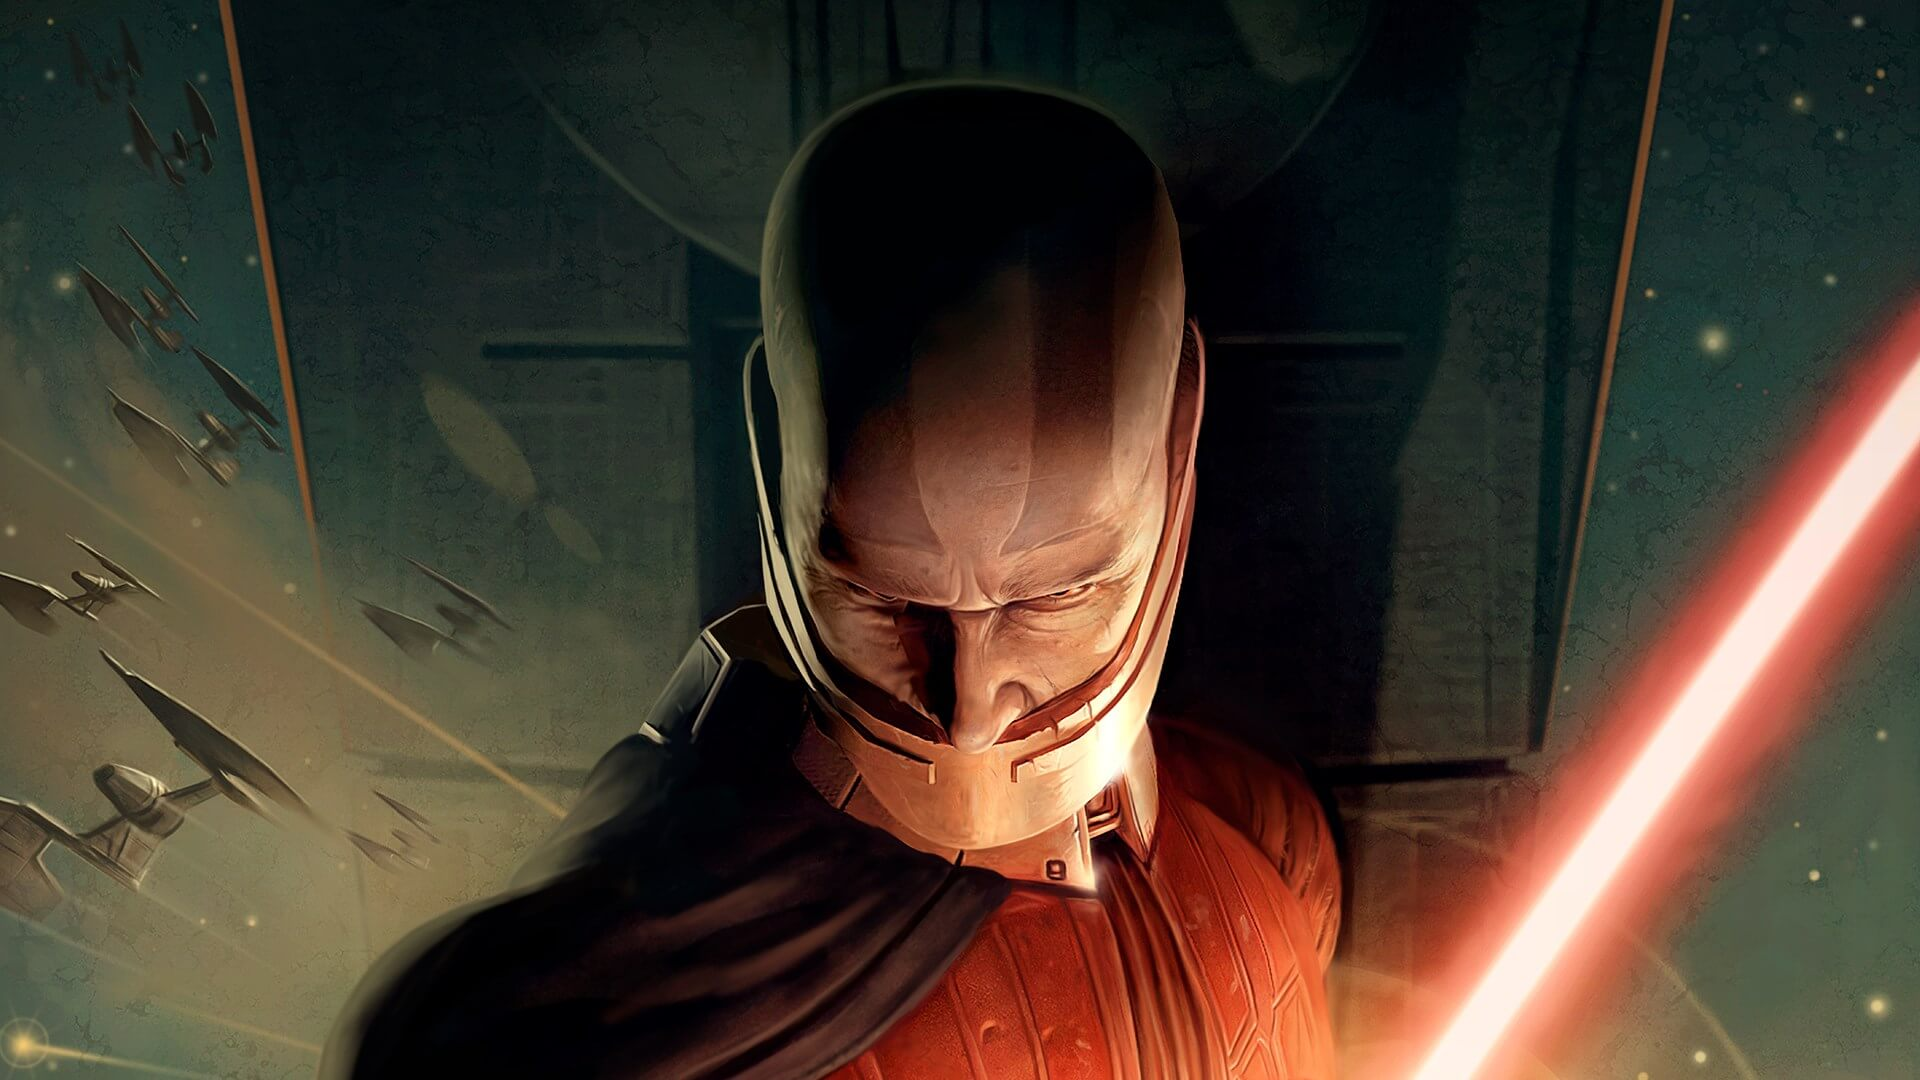 A New Star Wars KoTOR Game Is In The Works